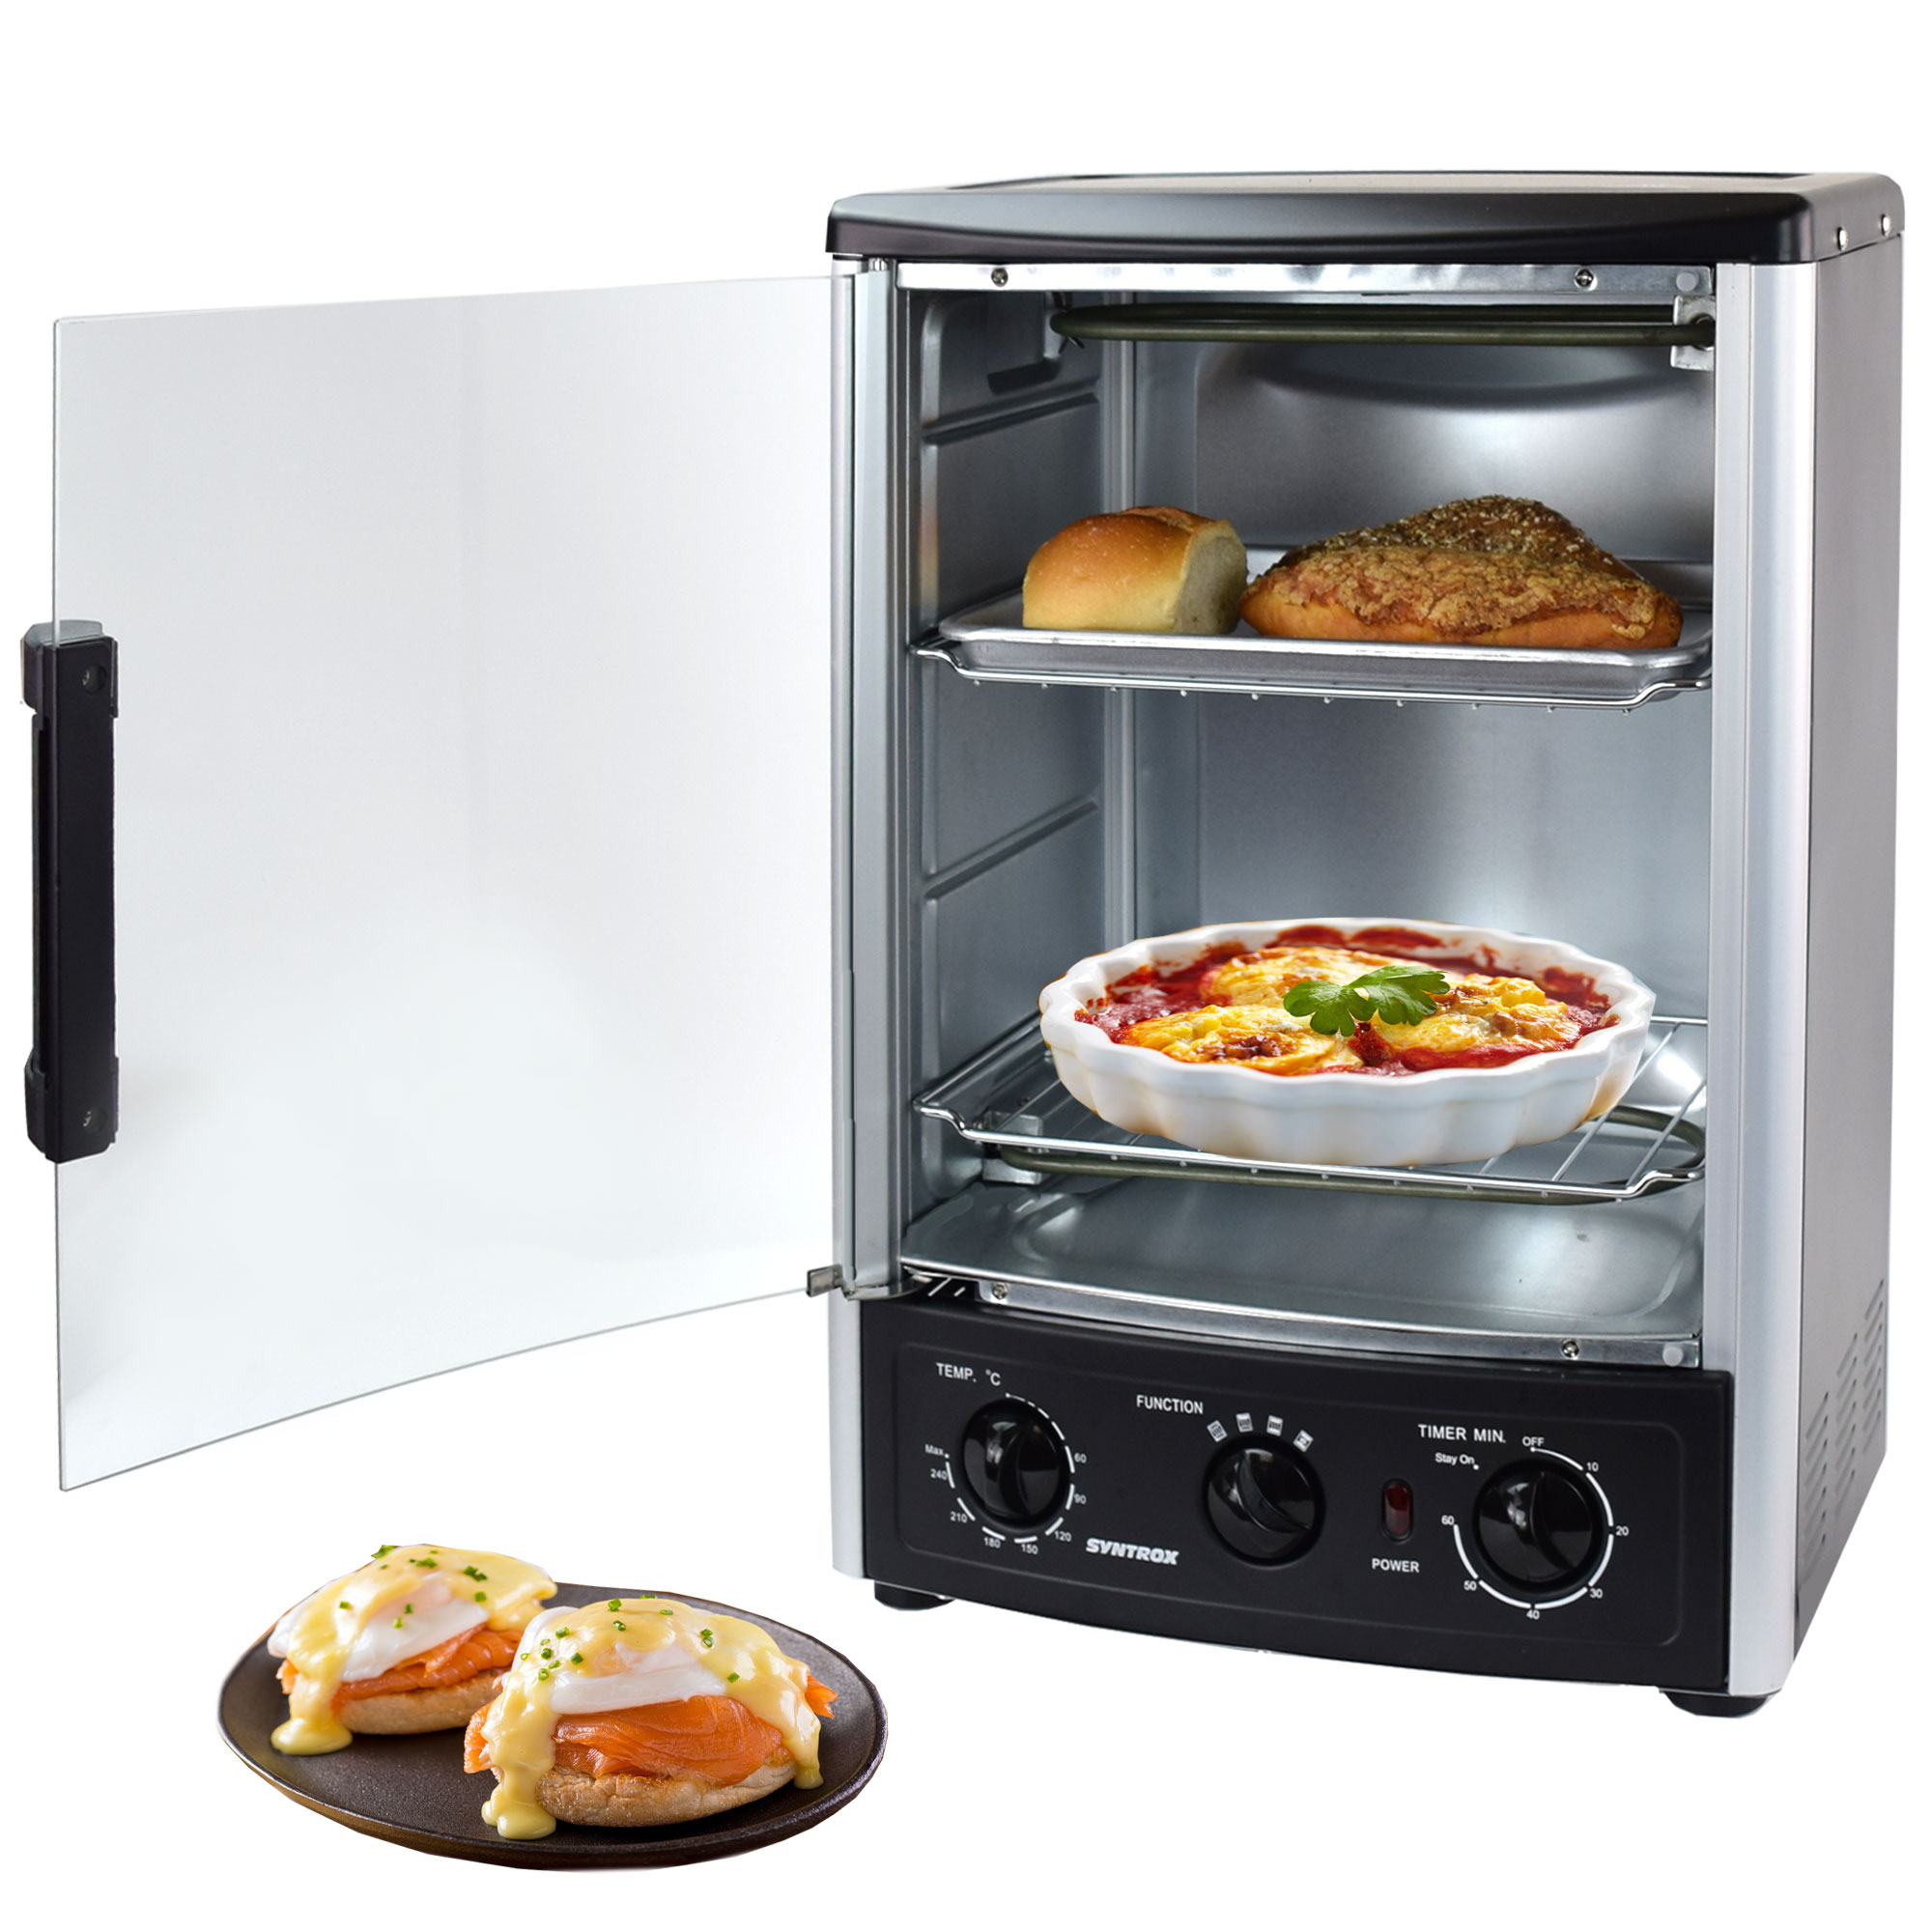 d nergrill rotisserie gyrosgrill h hnchengrill tischgrill 23 liter syntrox ebay. Black Bedroom Furniture Sets. Home Design Ideas